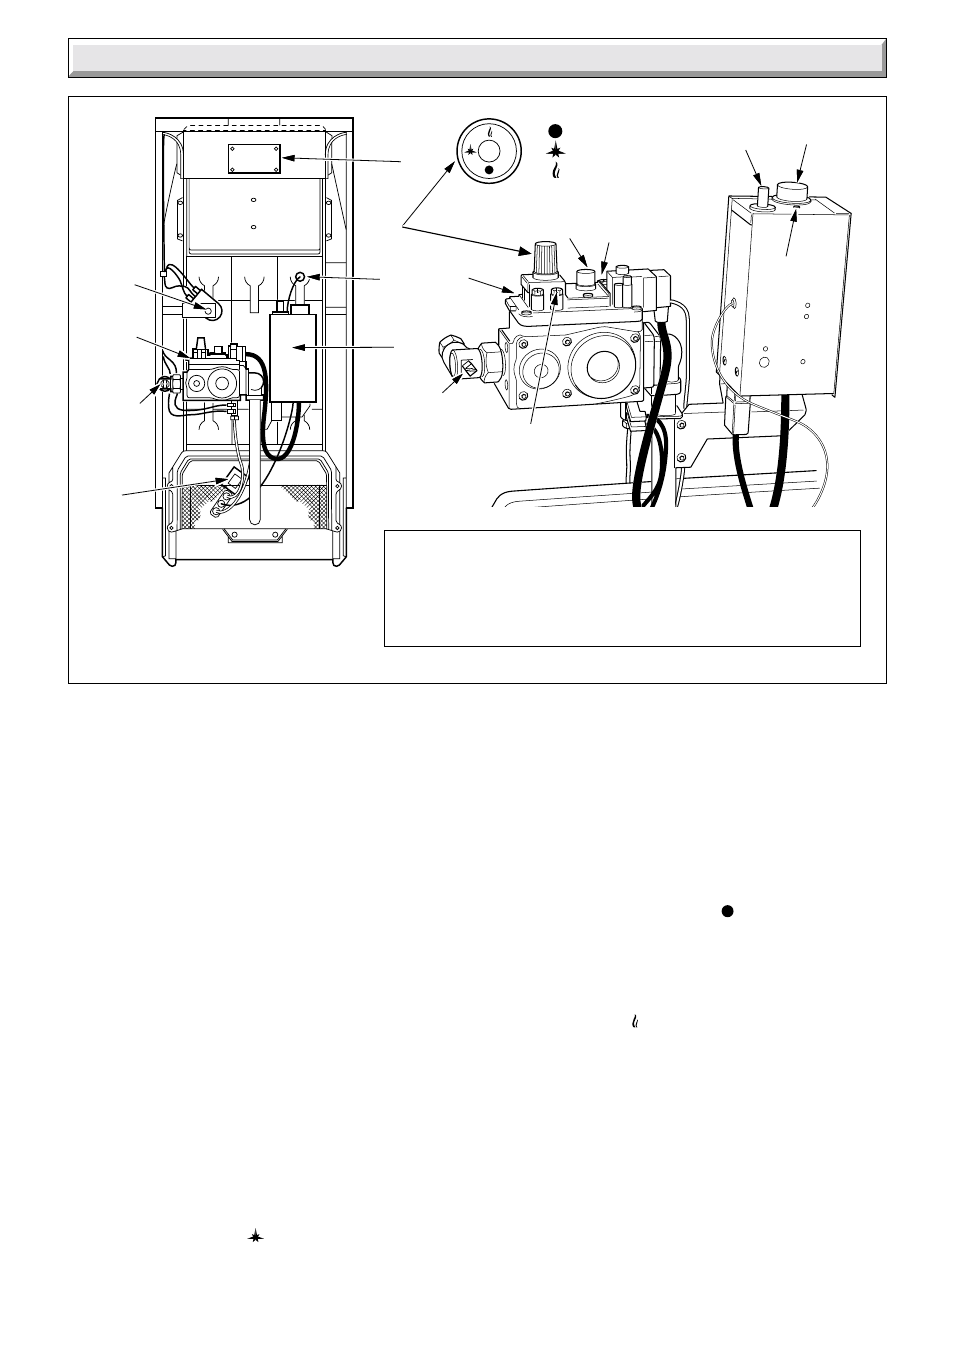 7 commissioning | Glow-worm Hideaway 80CF User Manual | Page 13 / 24